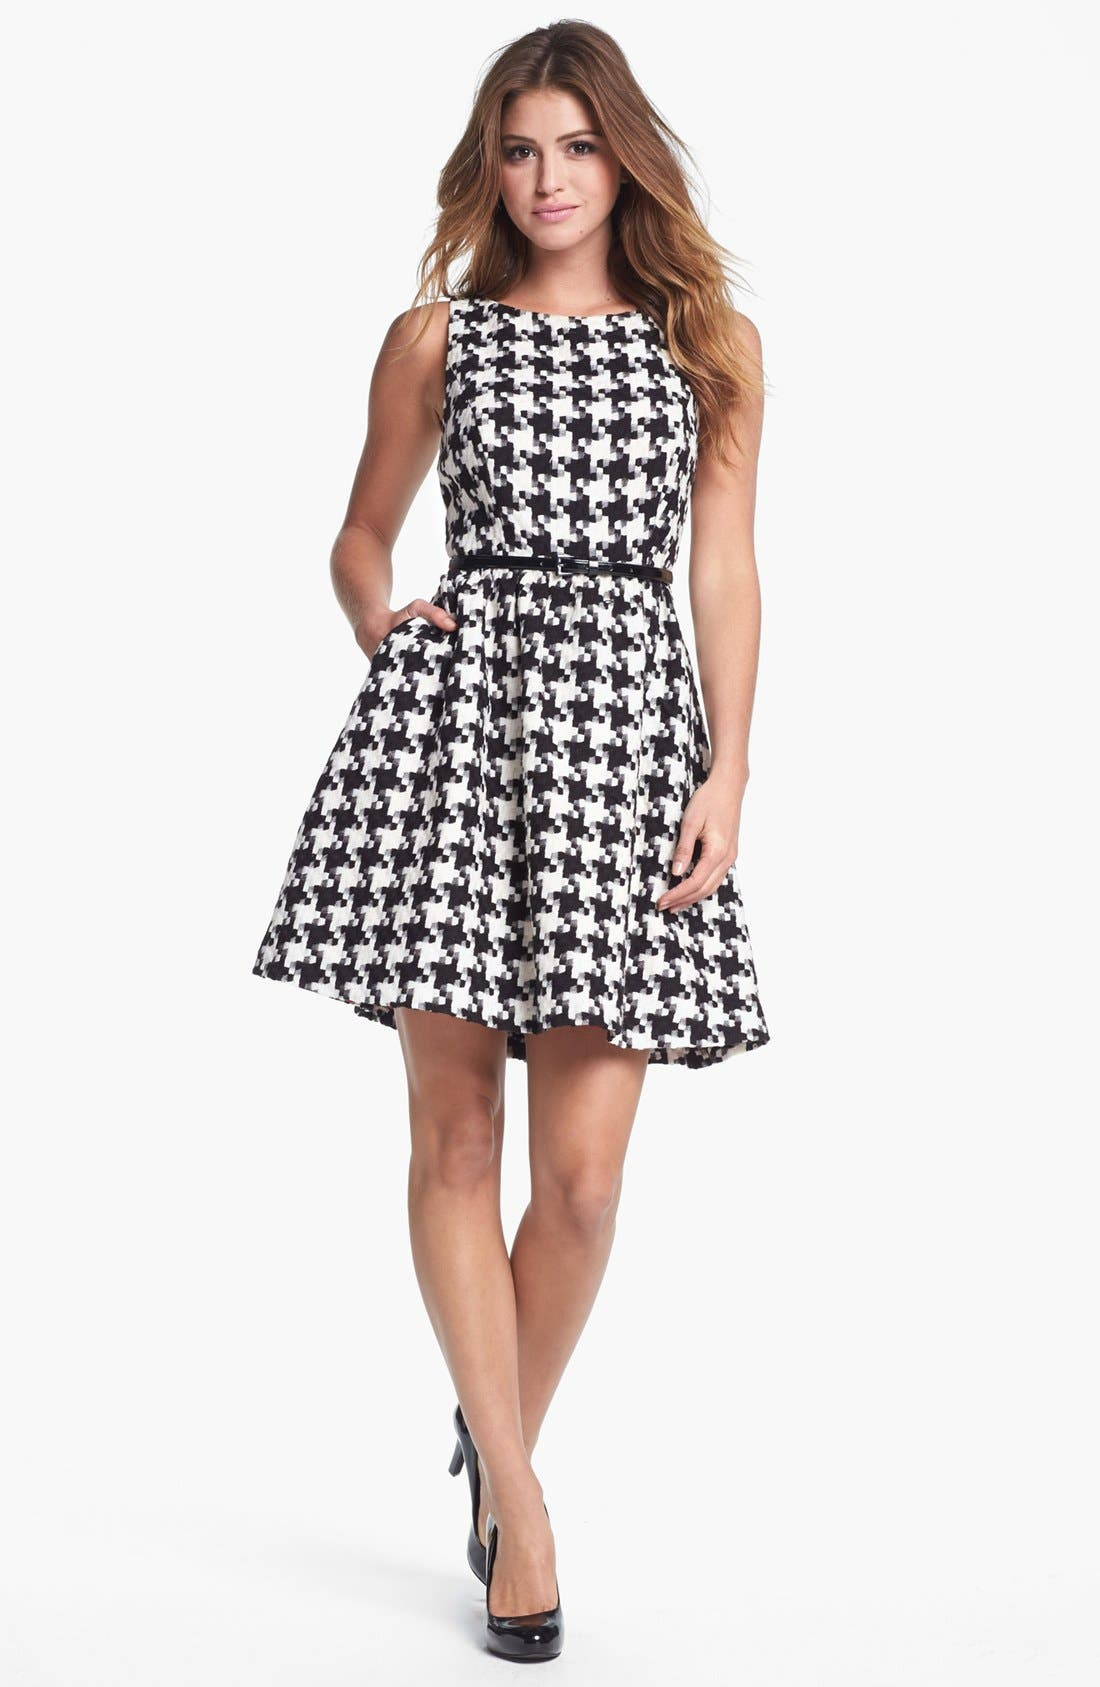 Main Image - Jessica Simpson Houndstooth Jacquard Fit & Flare Dress